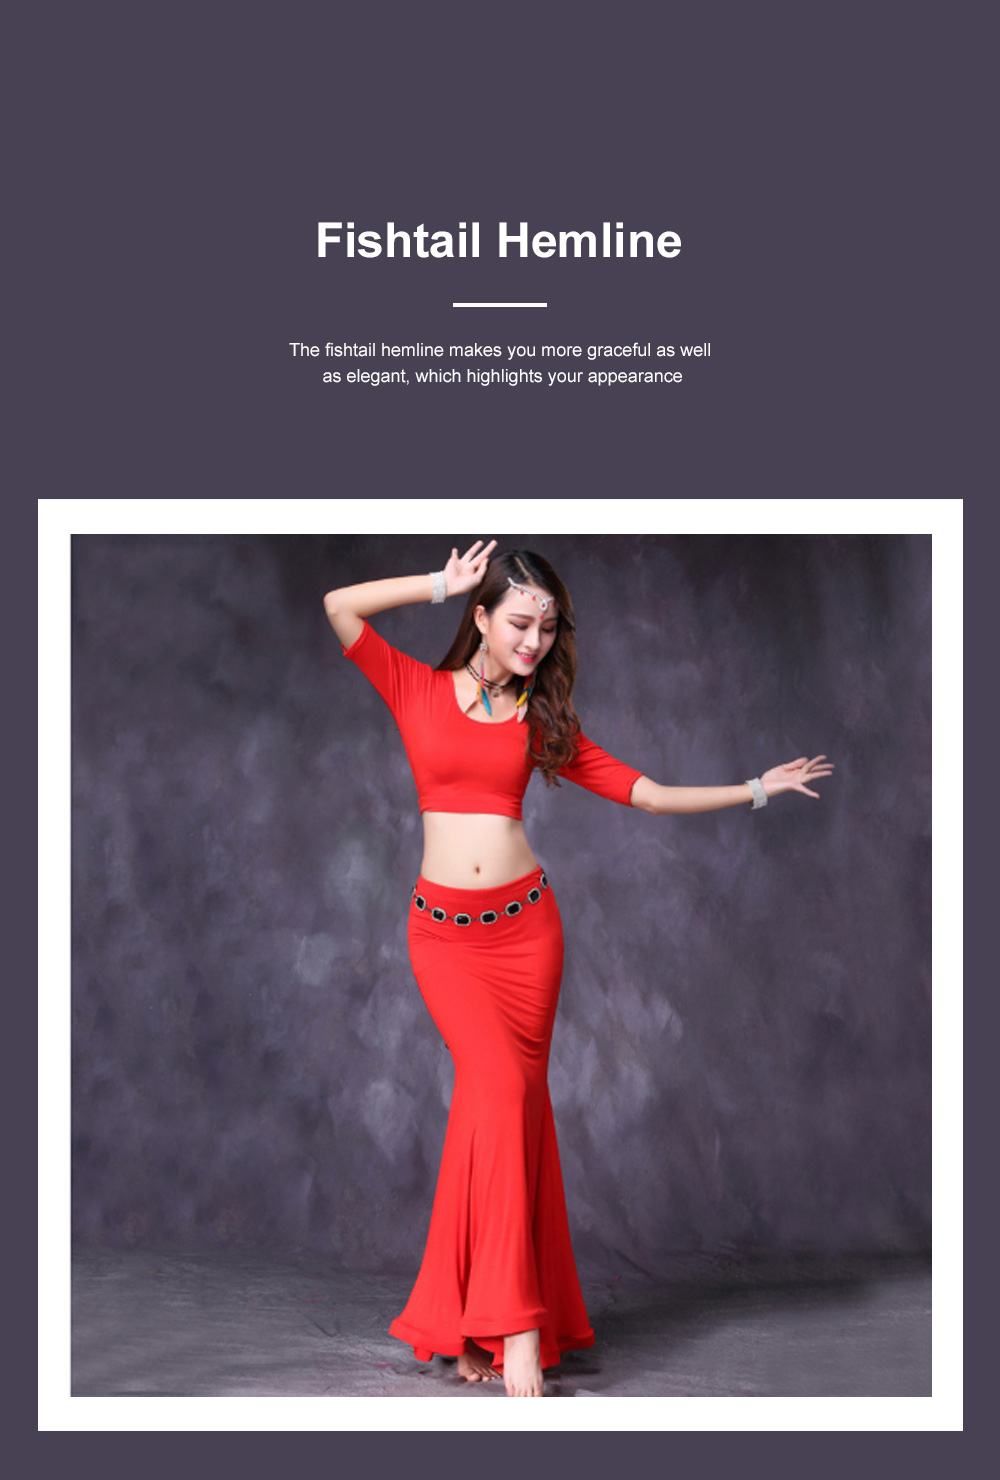 Belly Dance Costume Solid Color Set with Jewelry Decoration Fishtail Hemline Sheathe Dress 4